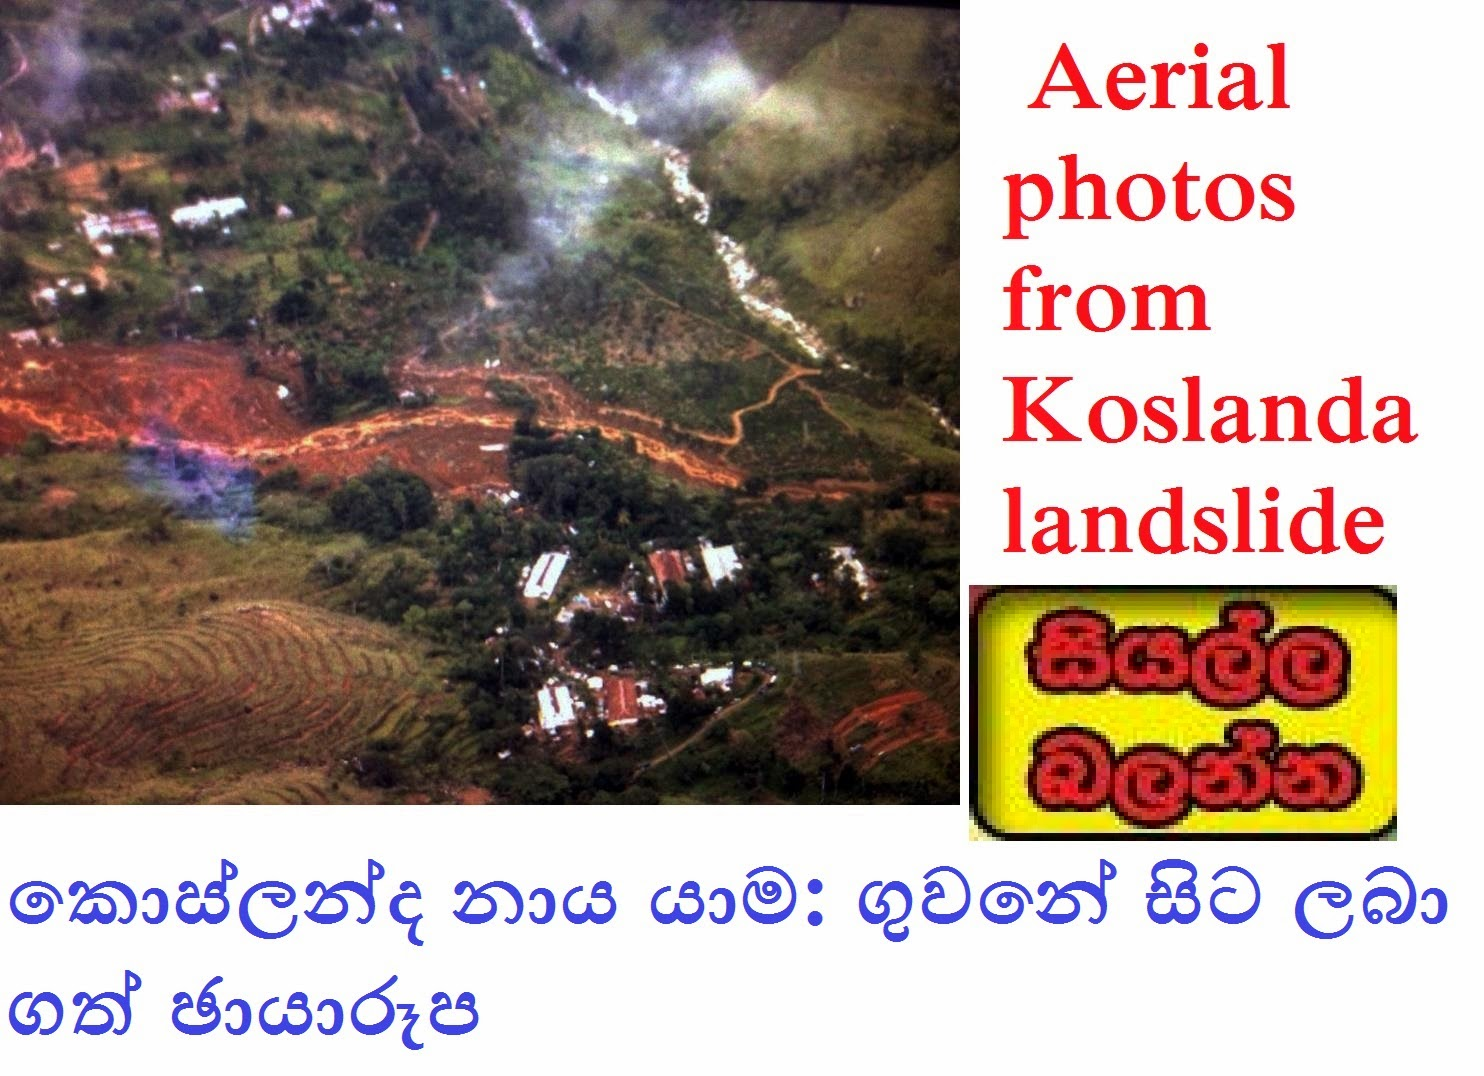 http://picture.gossiplankahotnews.com/2014/10/aerial-photos-from-koslanda-landslide.html